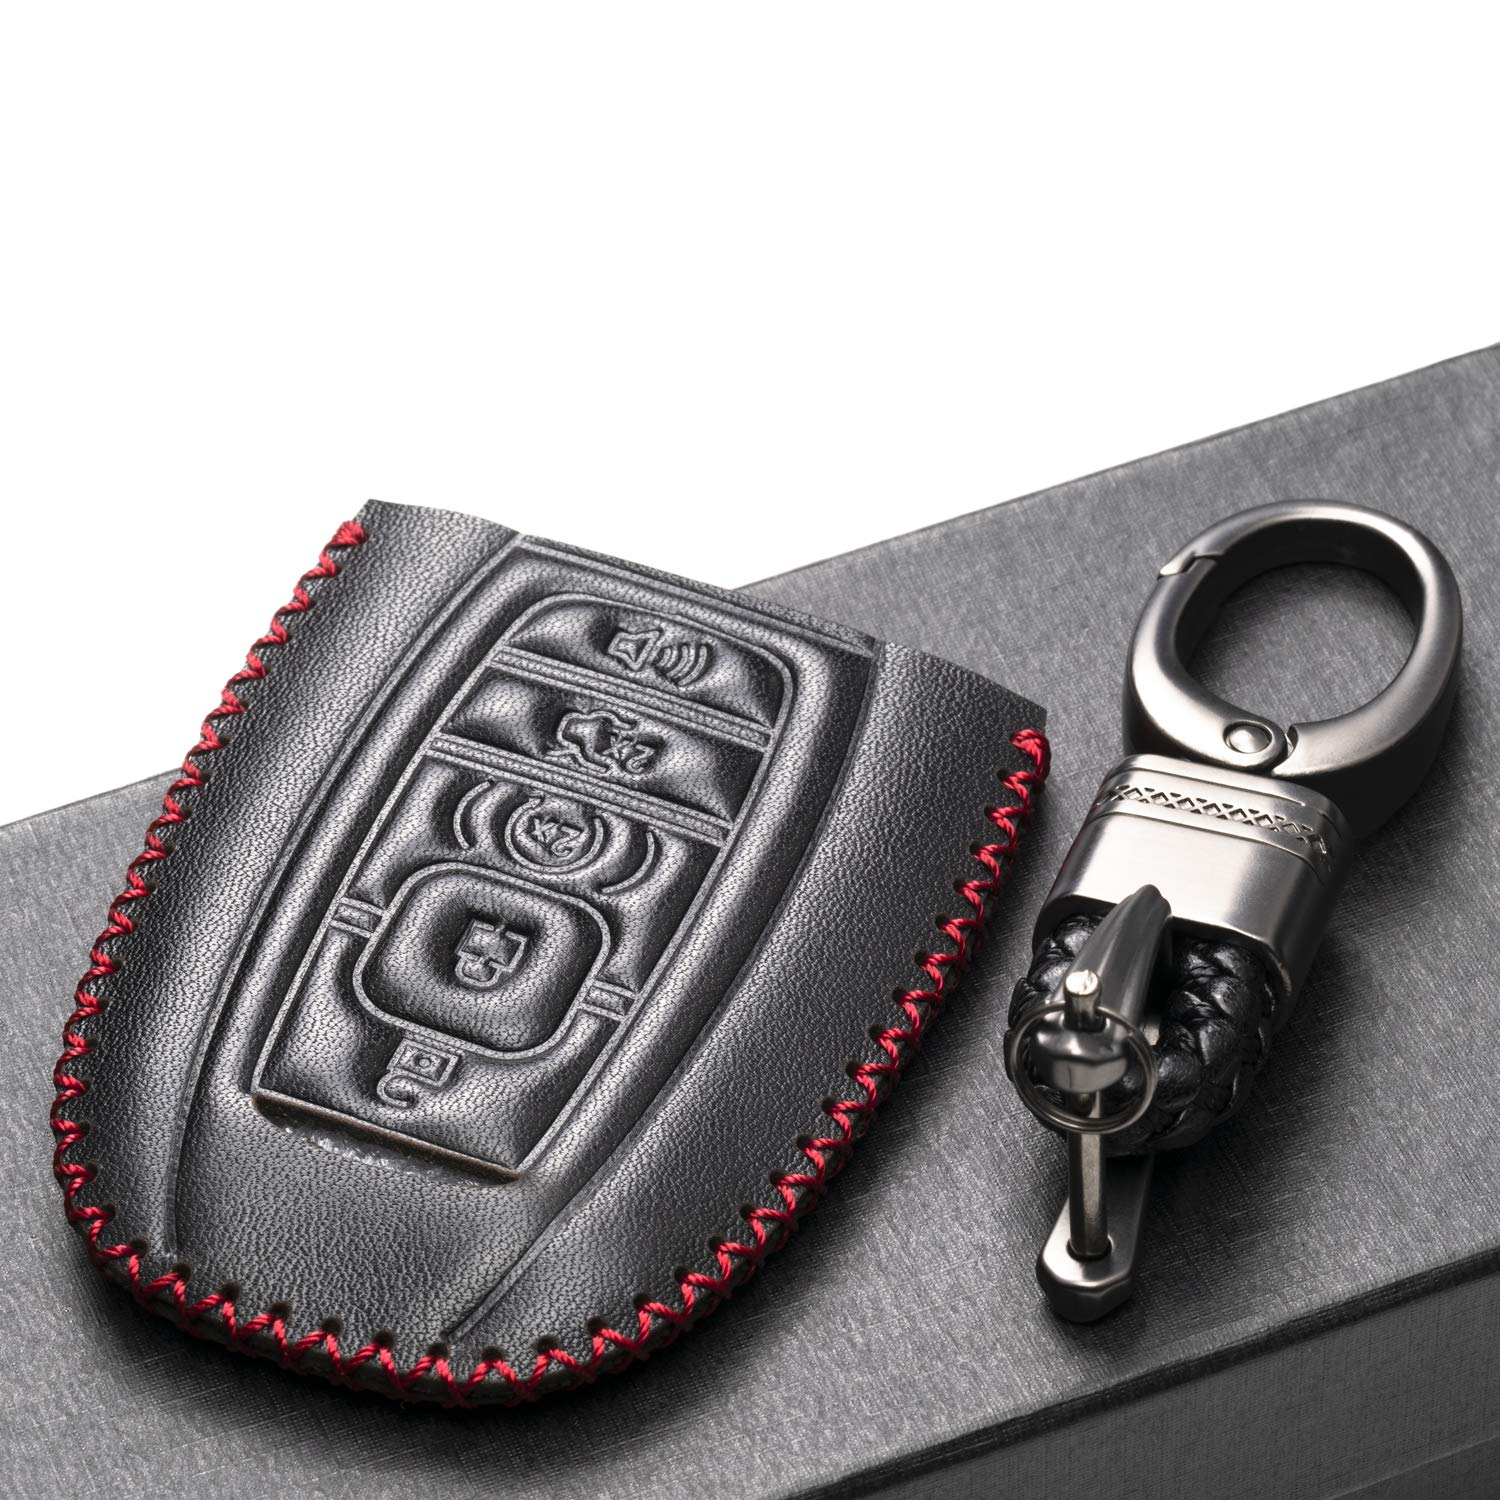 2018-2019 Lincoln Navigator 5 Buttons, Brown Vitodeco Genuine Leather Keyless Smart Key Fob Case Cover Protector with Leather Key Chain for 2017-2019 Lincoln Continental MKZ MKX MKC